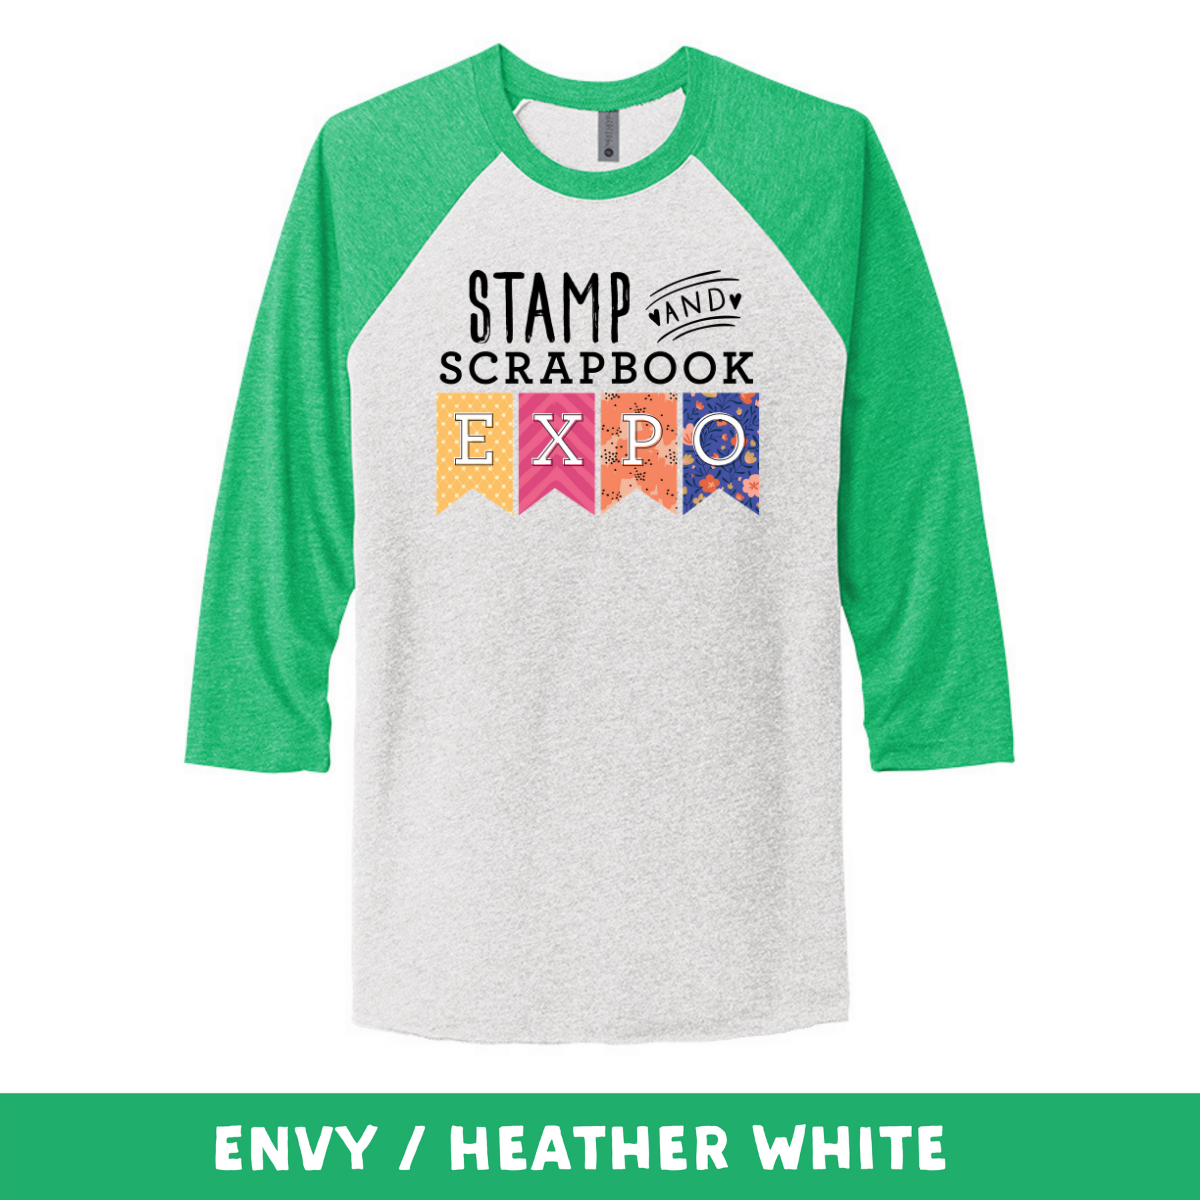 Envy Heather White - Unisex Tri-Blend 3/4 Sleeve Raglan Tee - Stamp & Scrapbook Expo Color Logo